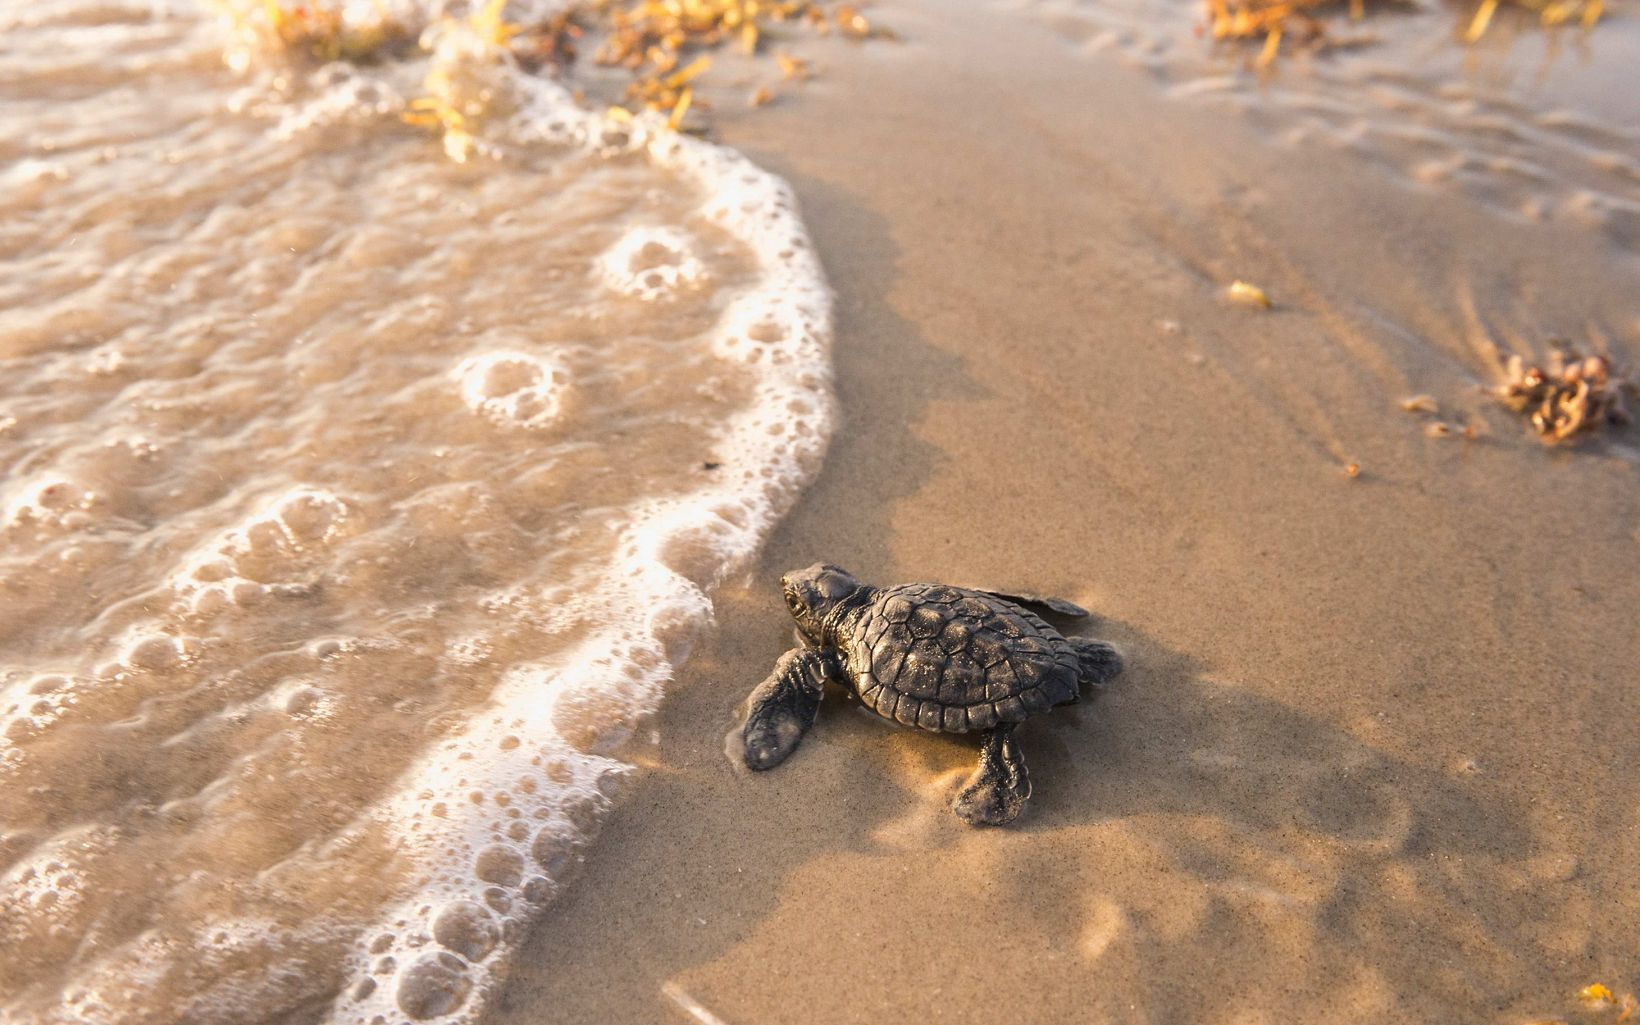 A tiny sea turtle hatchling in the sand as water laps up nearby.